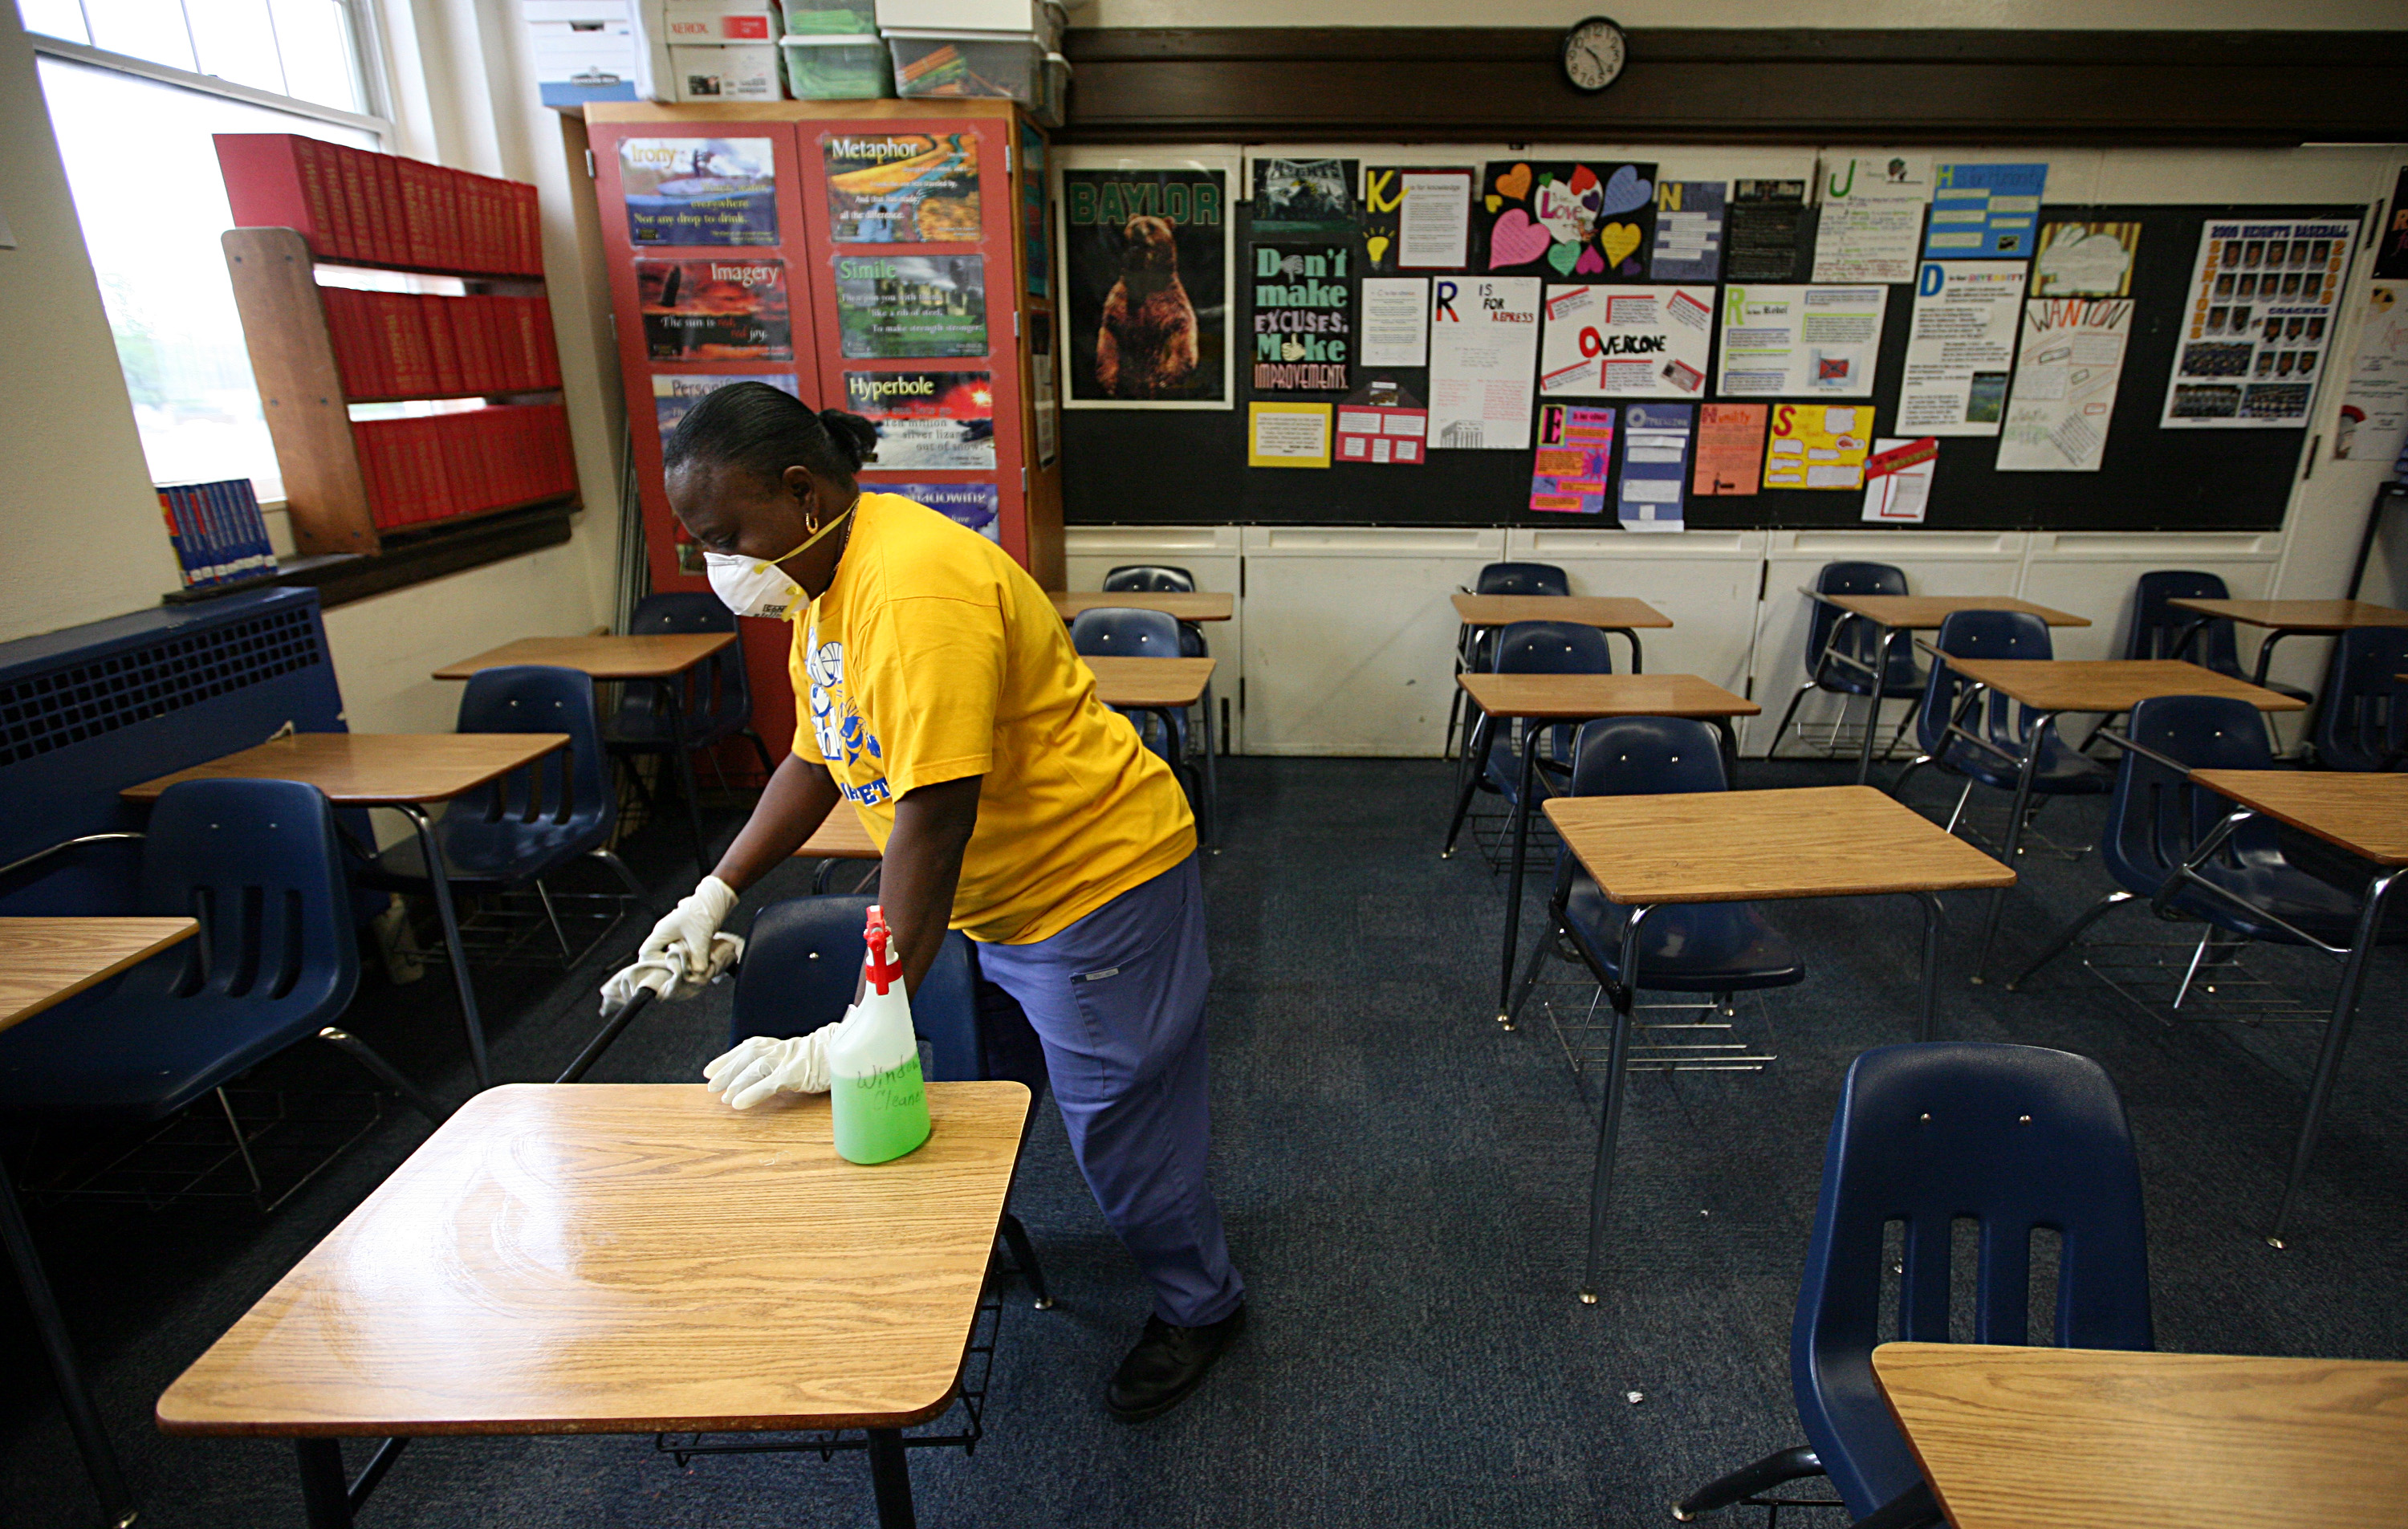 FORT WORTH - APRIL 30: Fort Worth Independent School District custodian Necie Homer wipes down a classroom with disinfectant in an effort to stop the spread of the swine flu virus at Arlington Heights High School on April 30, 2009 in Fort Worth, Texas. FWISD officials closed all schools in Fort Worth late on April 29 in an effort to stop the spread of the virus. (Photo by Tom Pennington/Getty Images)